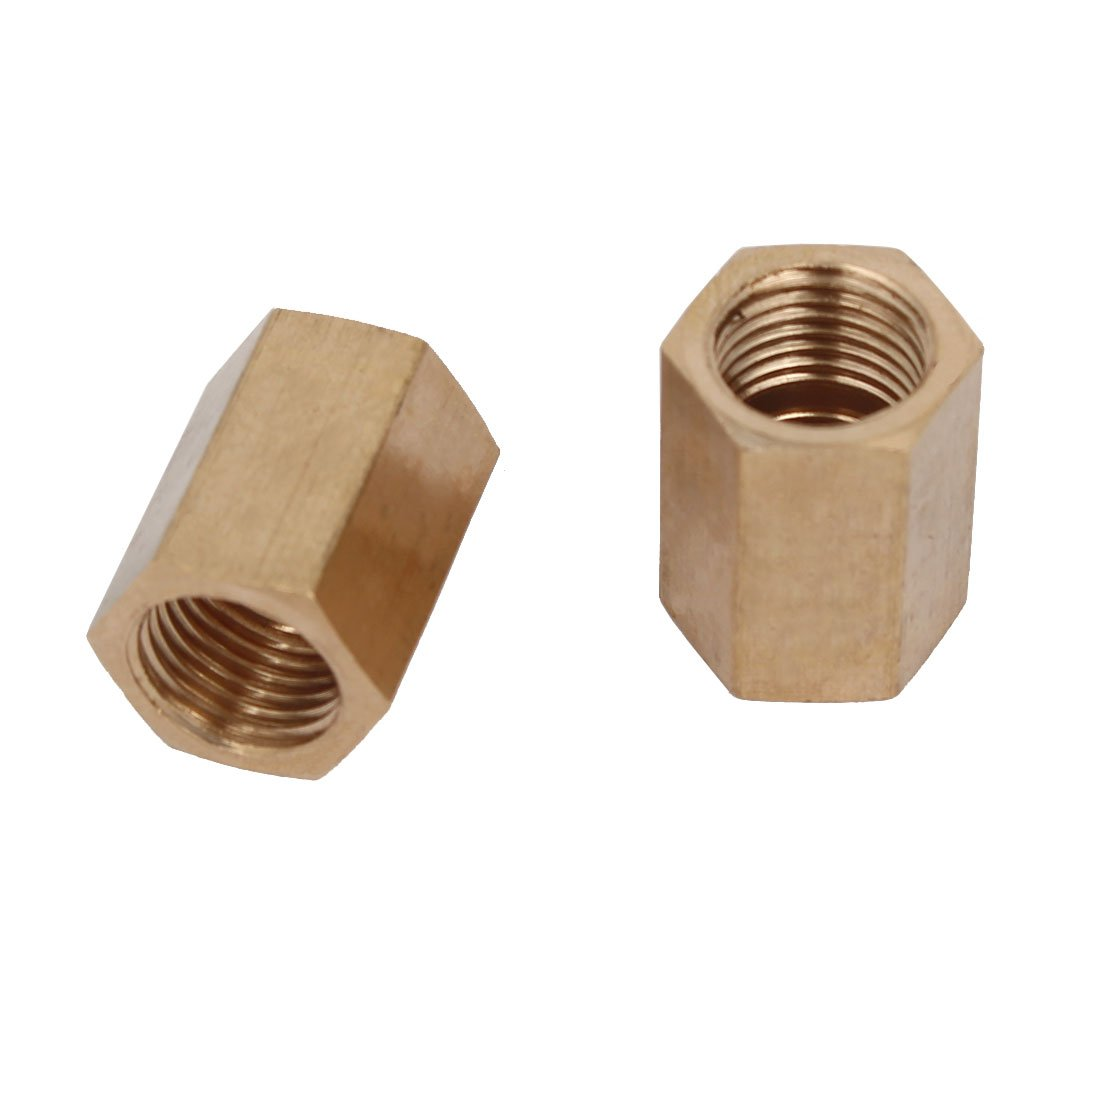 uxcell 1//4BSP Female Thread Straight Hex Fitting Rod Coupling Nut Brass Tone 2pcs a17011000ux0312